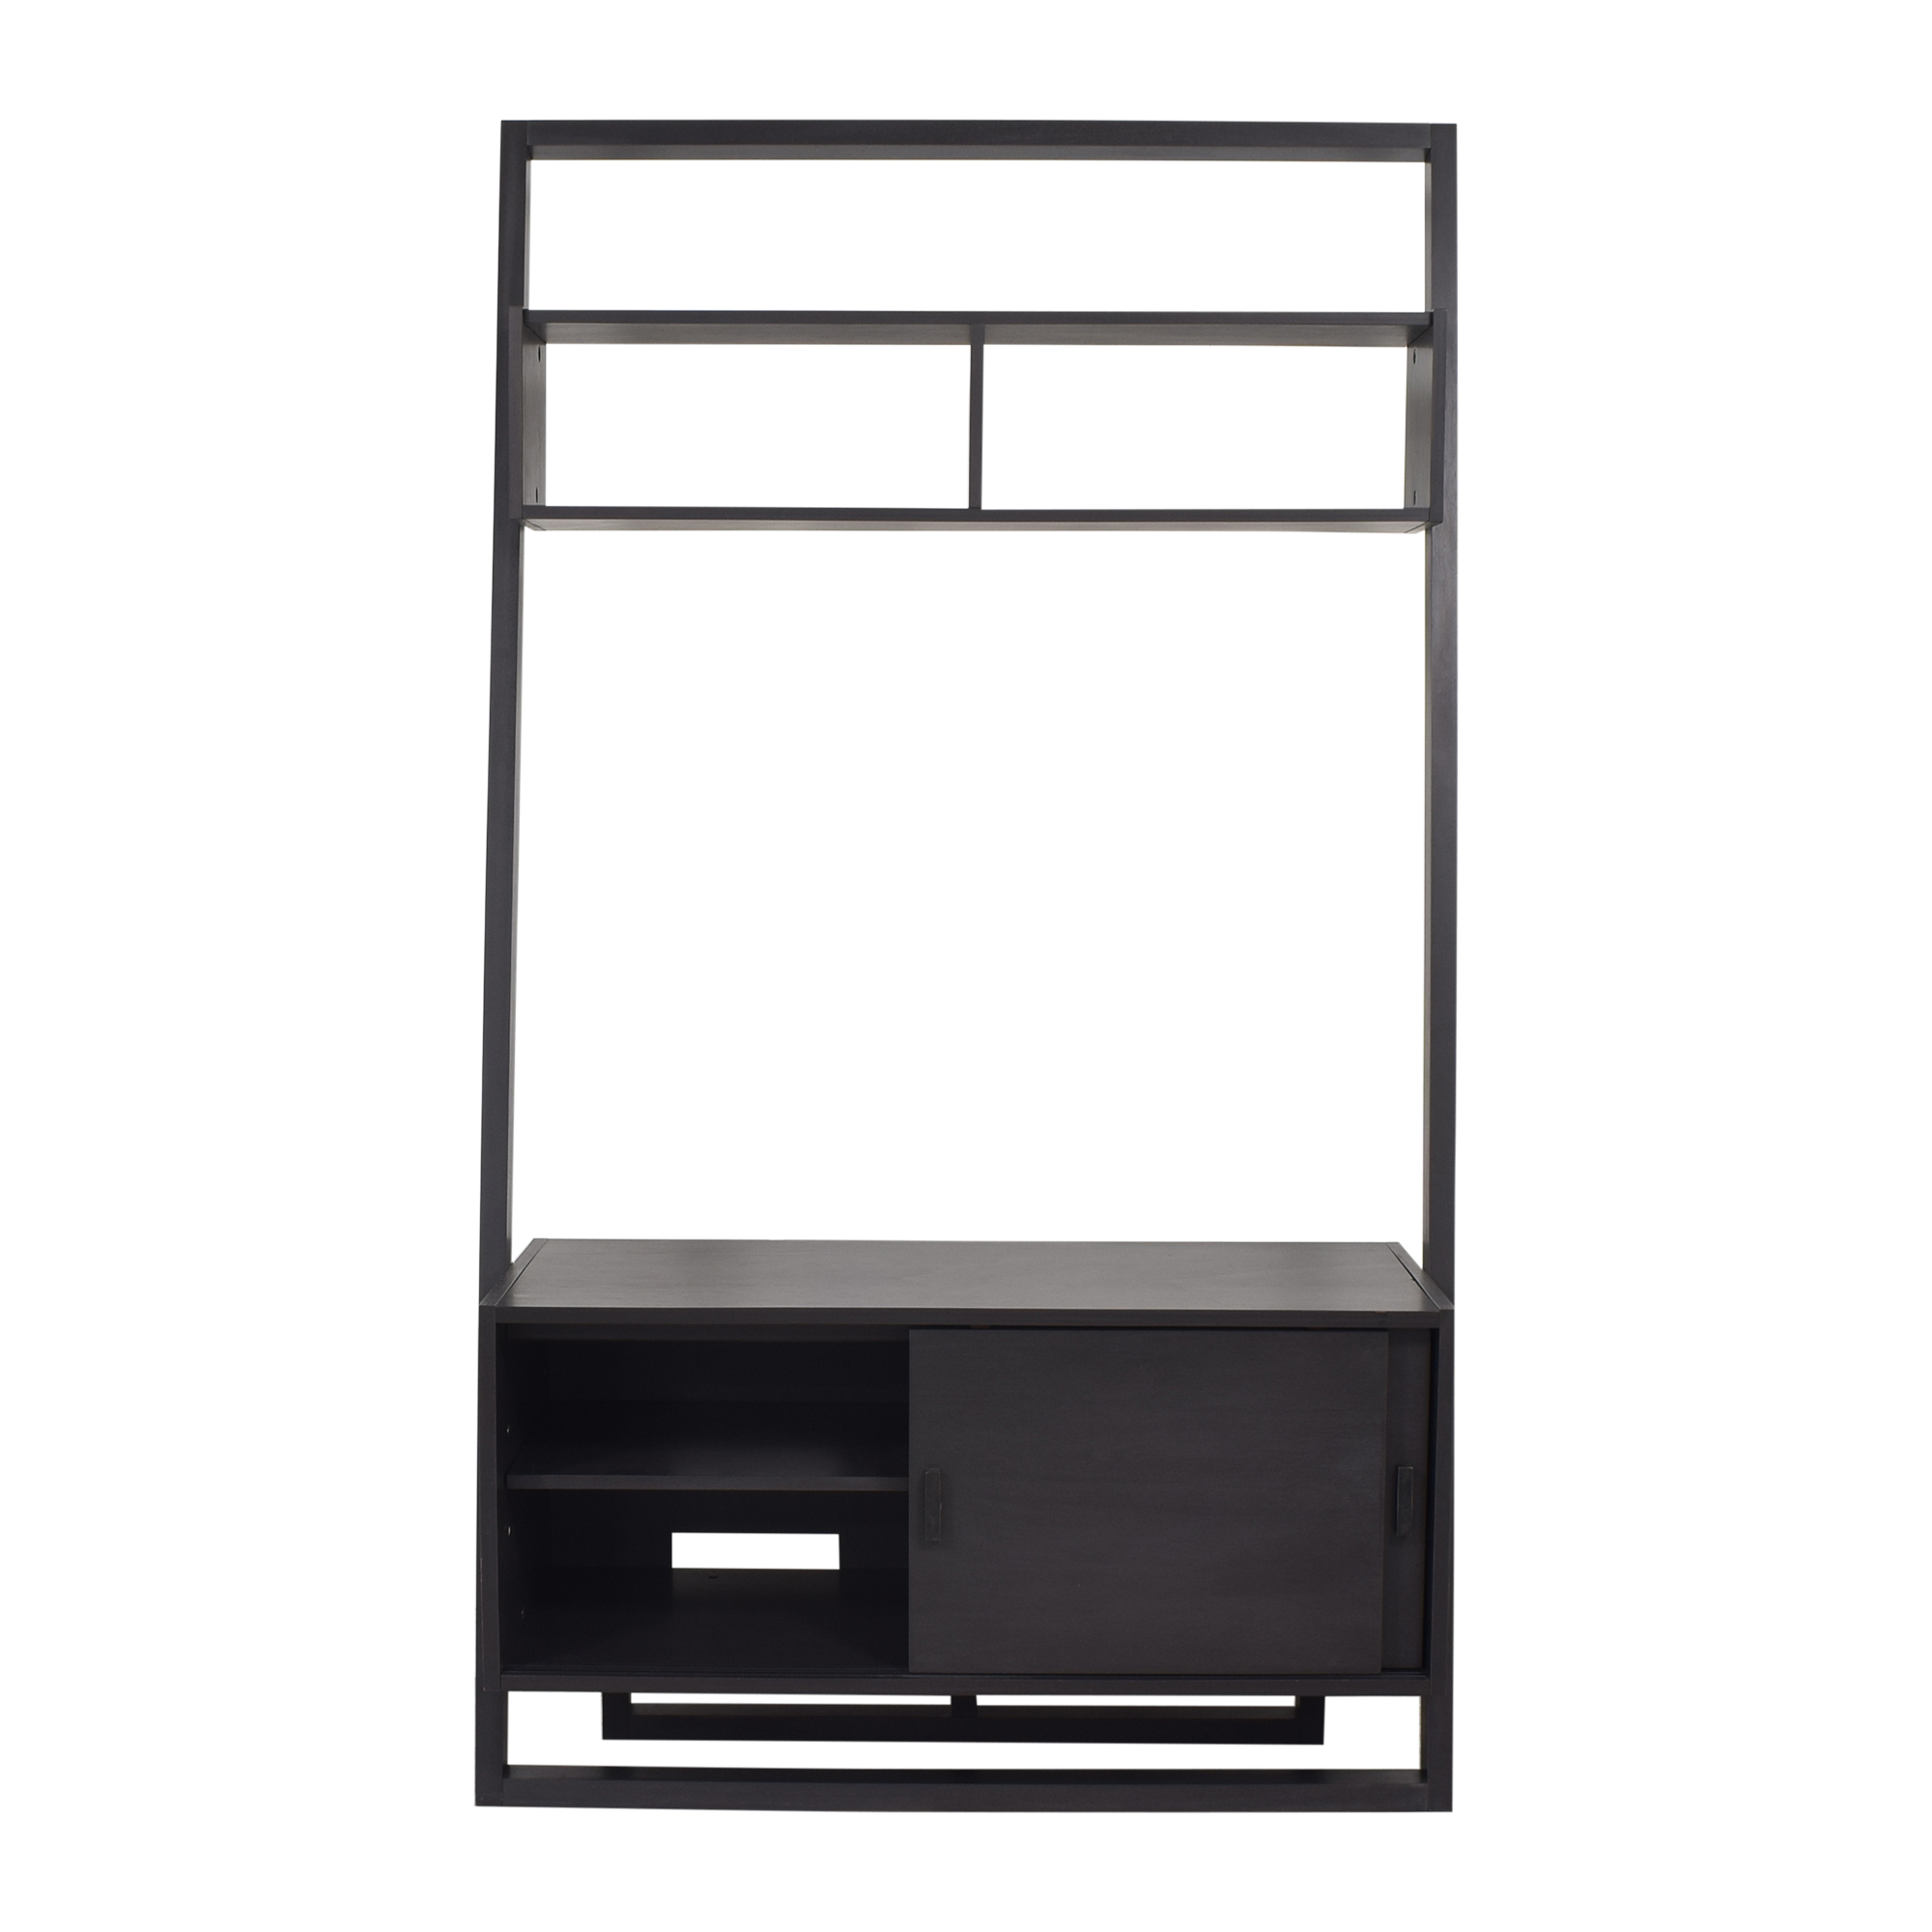 Crate & Barrel Crate & Barrel Sloane Leaning Media Stand second hand